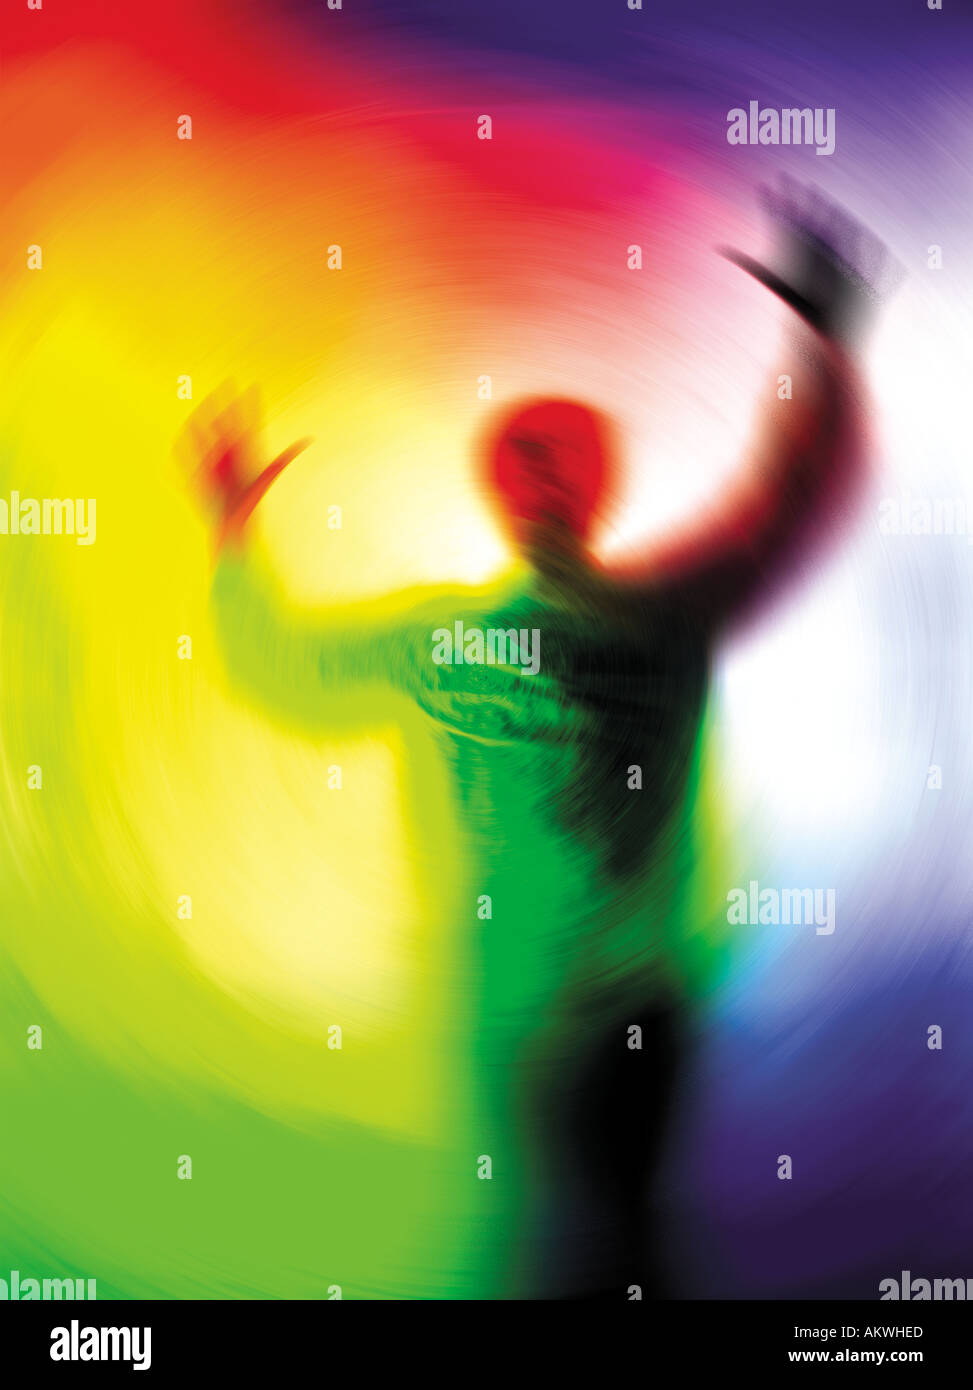 person in torment swirling around colourful background abstract concept illustration - Stock Image